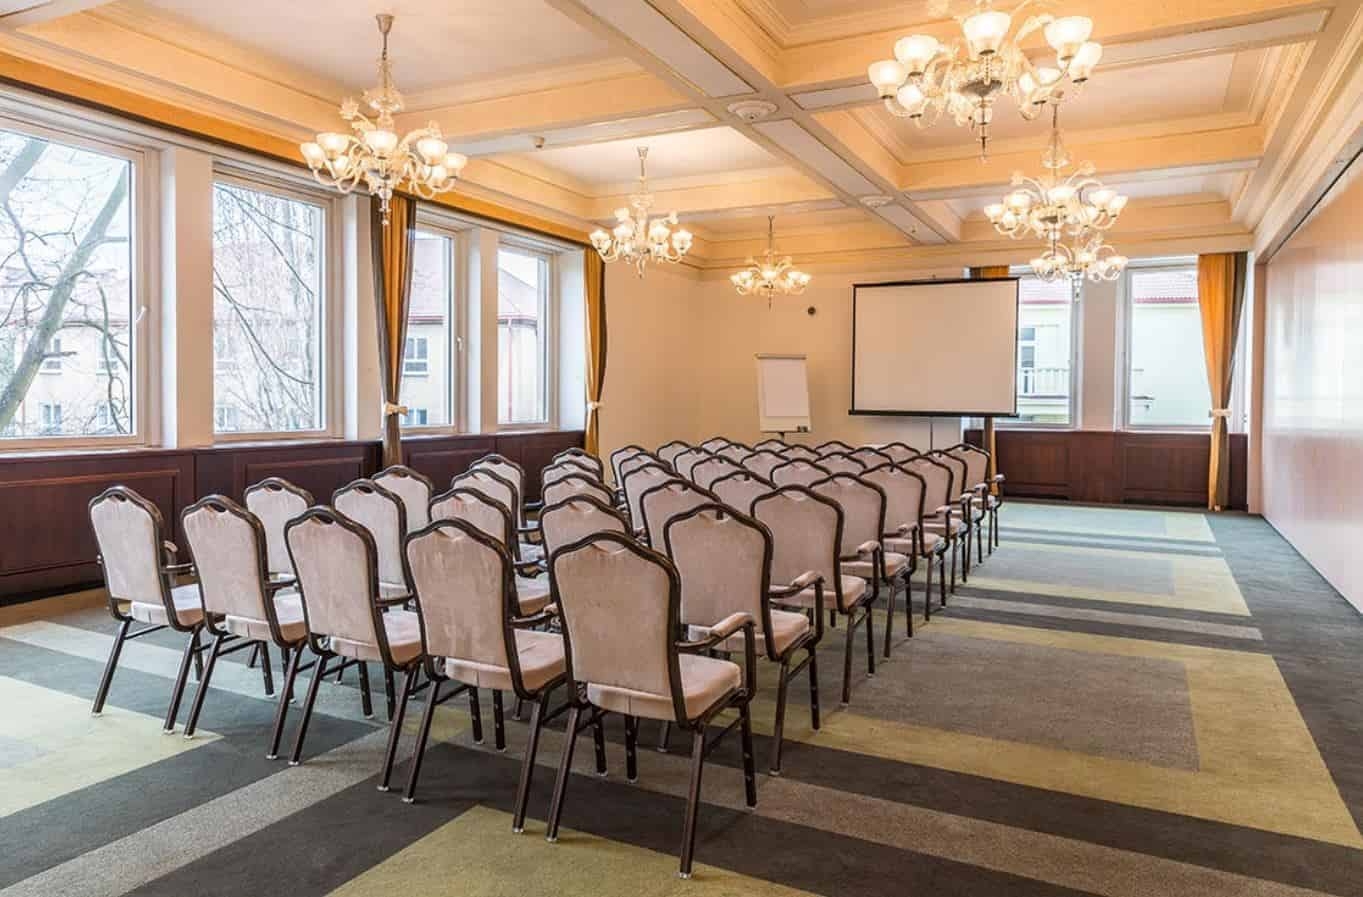 Bright conference room with eye-catching chandeliers